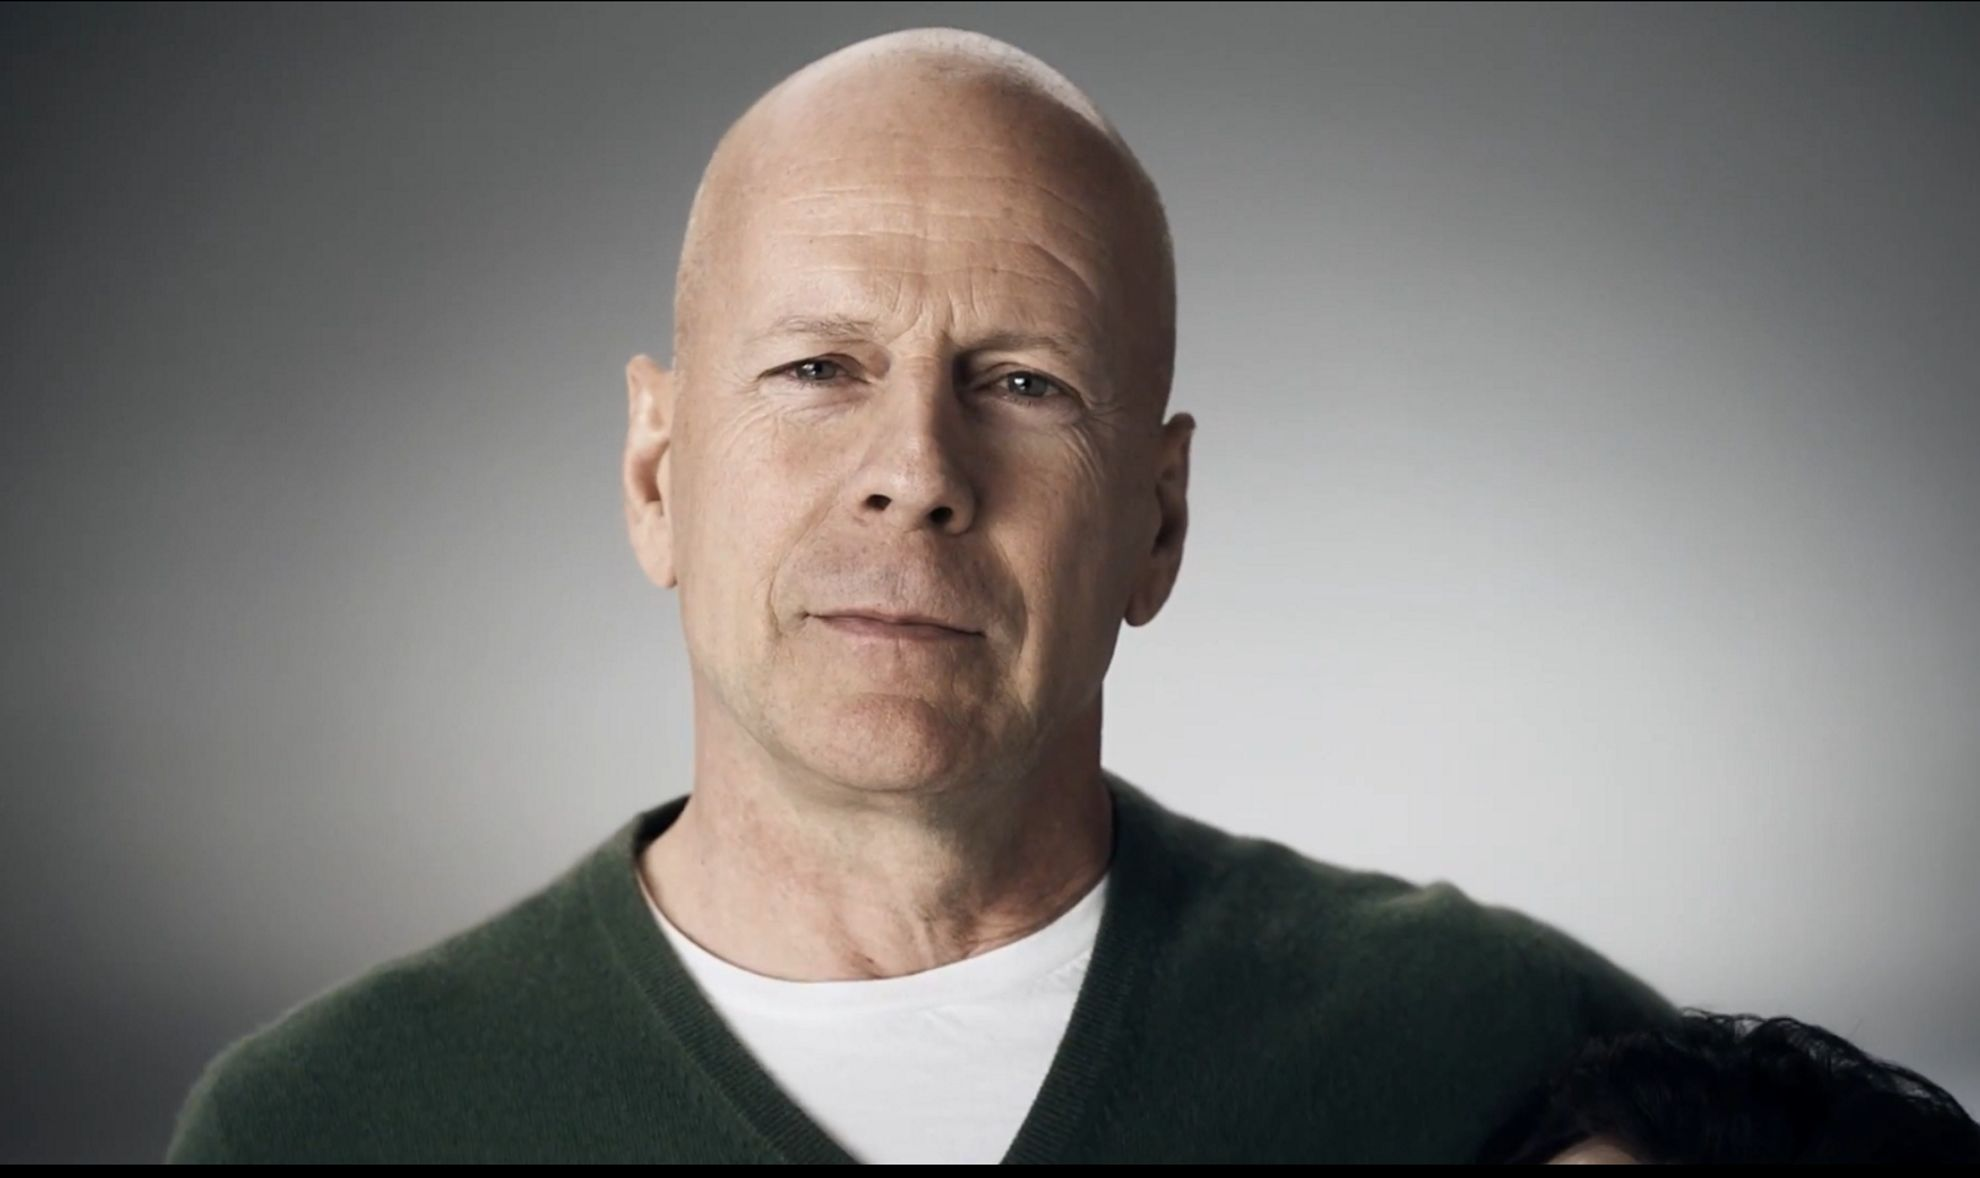 Il duro Bruce Willis ha compiuto sessant'anni - Cataniavera.it - Bruce-Willis